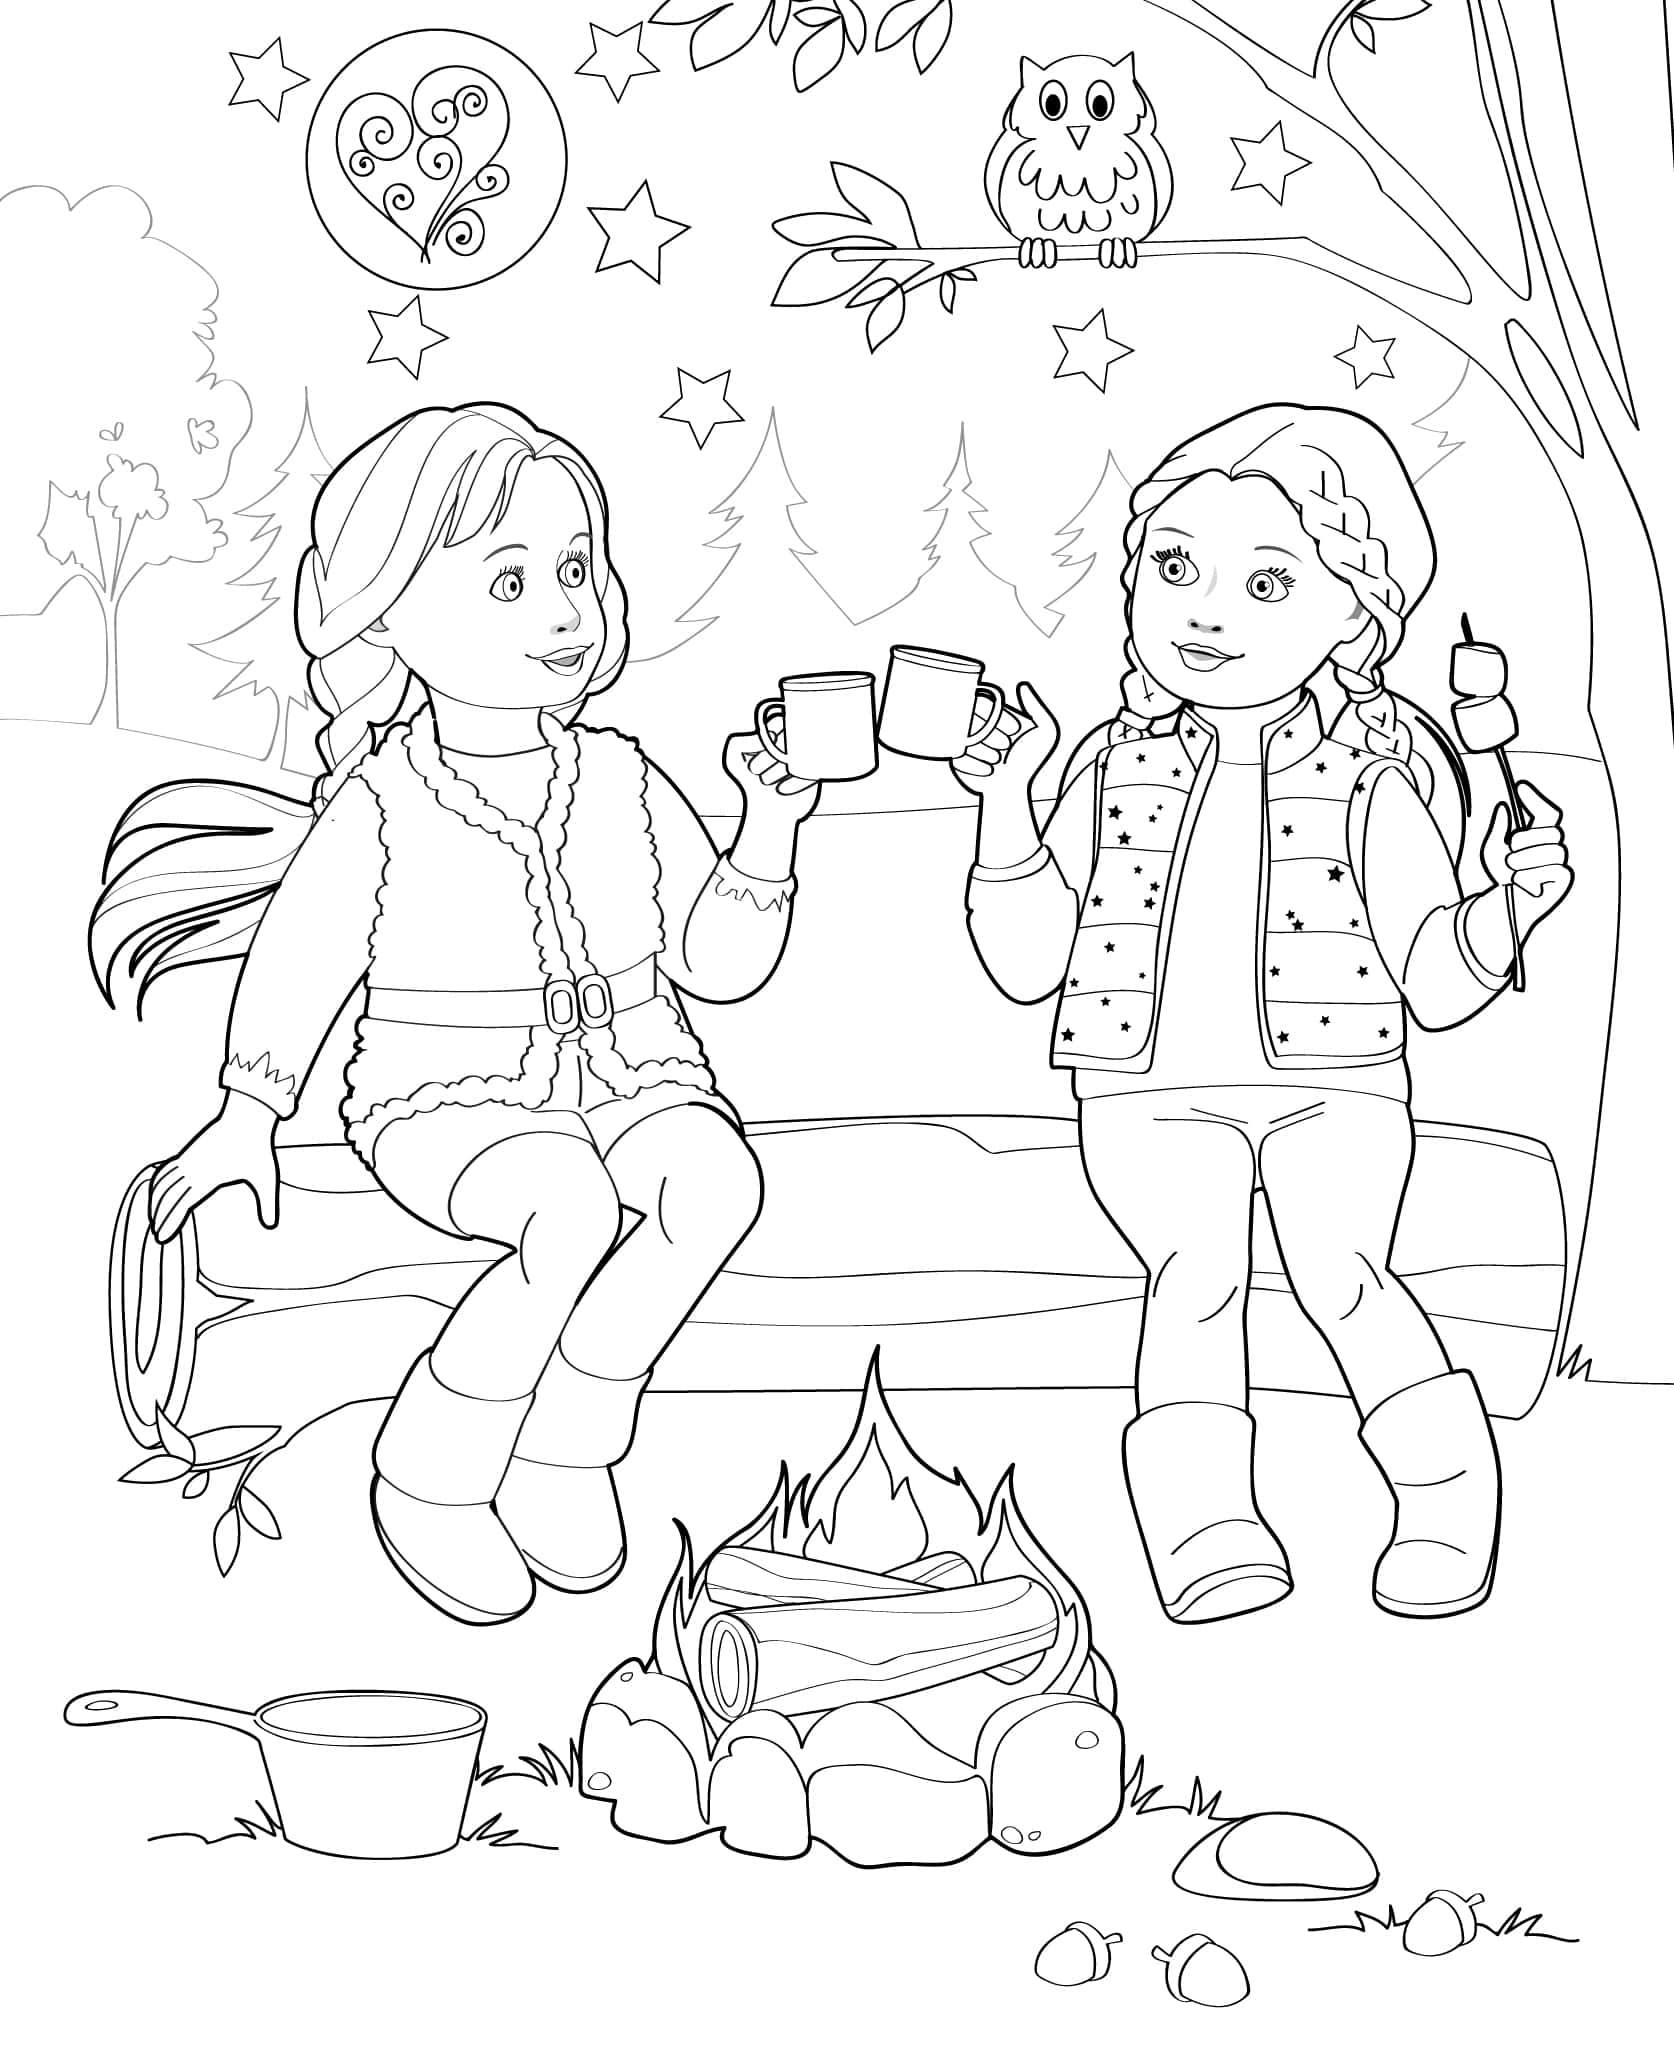 doll coloring book pages - photo#13